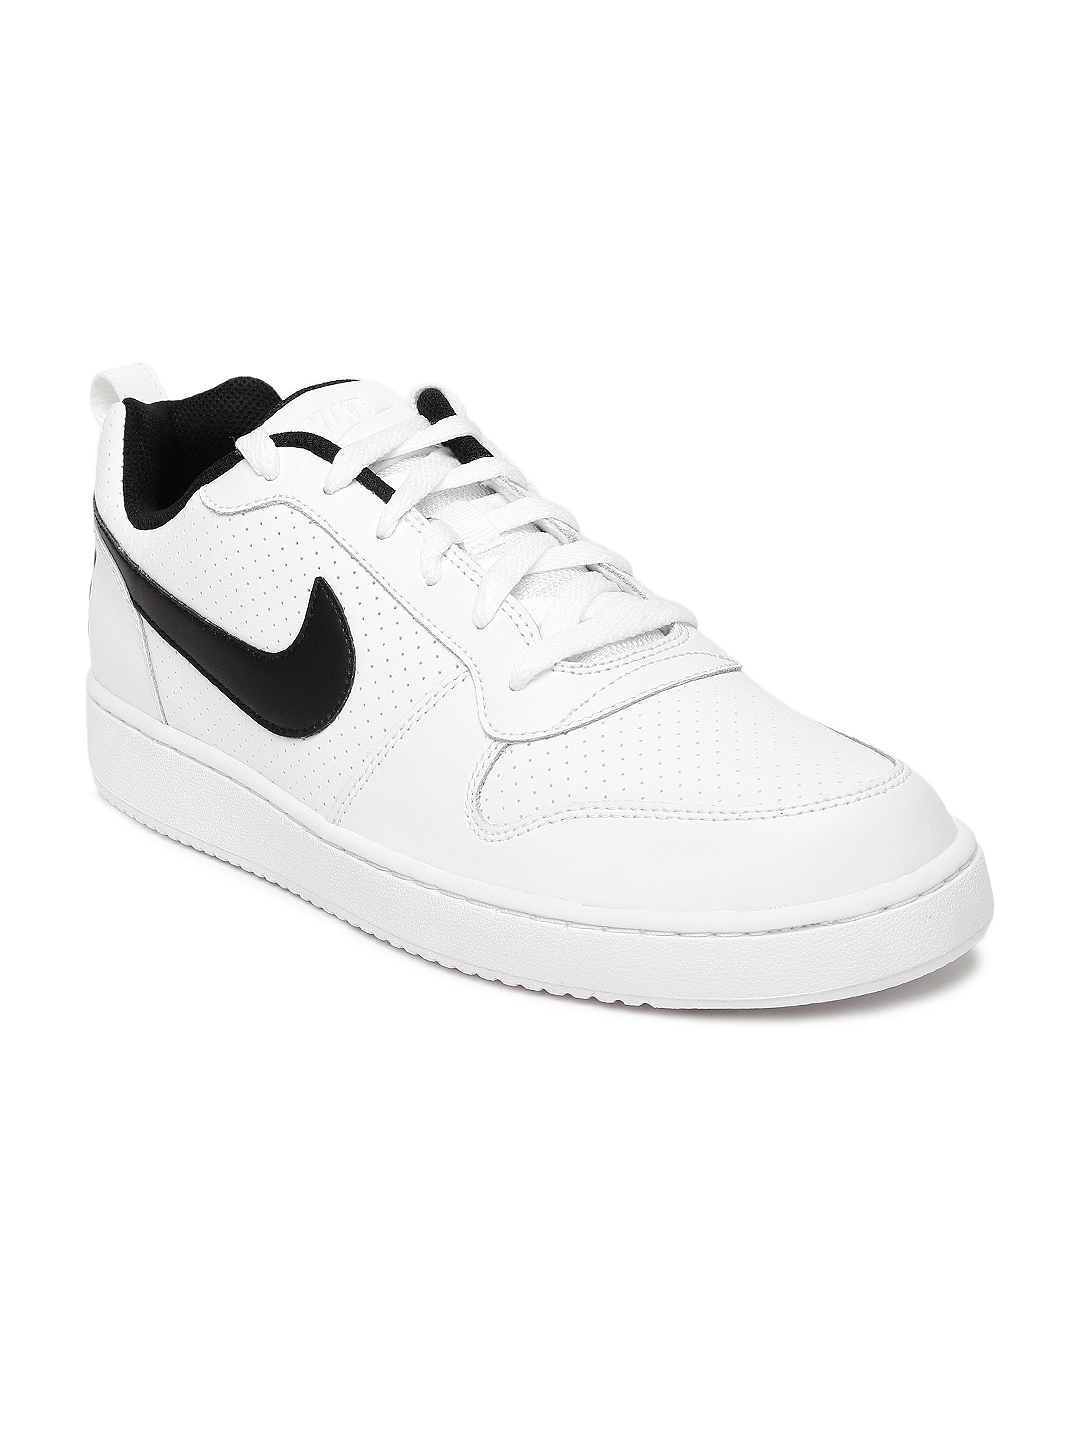 4b87e0b5598 Buy Nike Men White Court Borough Sneakers - Casual Shoes for Men ...